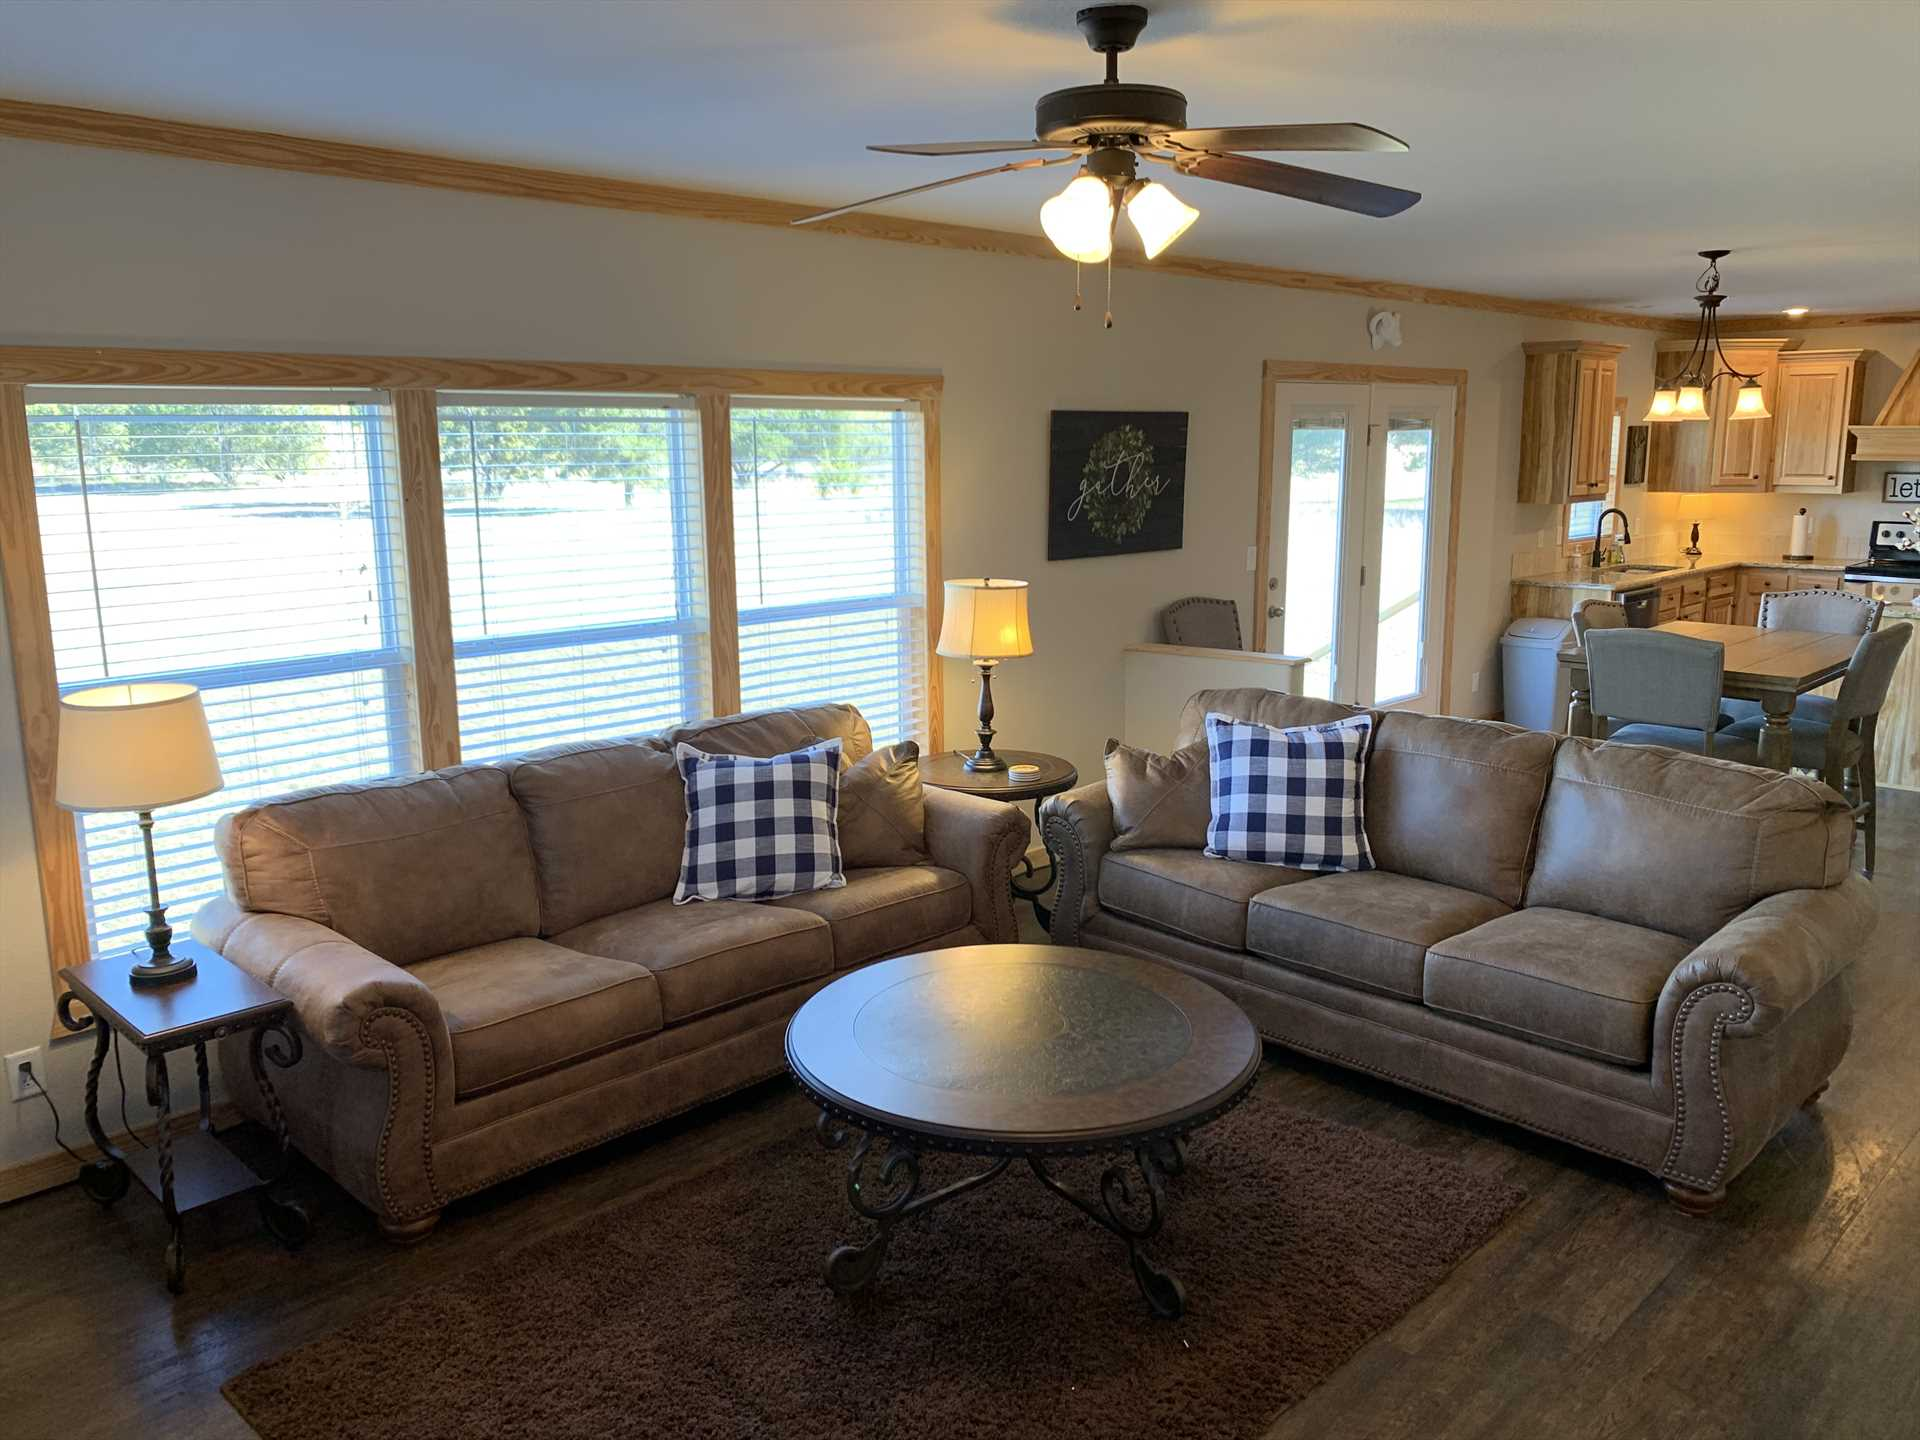 One of the couches in the big living area doubles as a bed, so all told the Hideaway has excellent sleeping space for up to 13 of your family and friends.